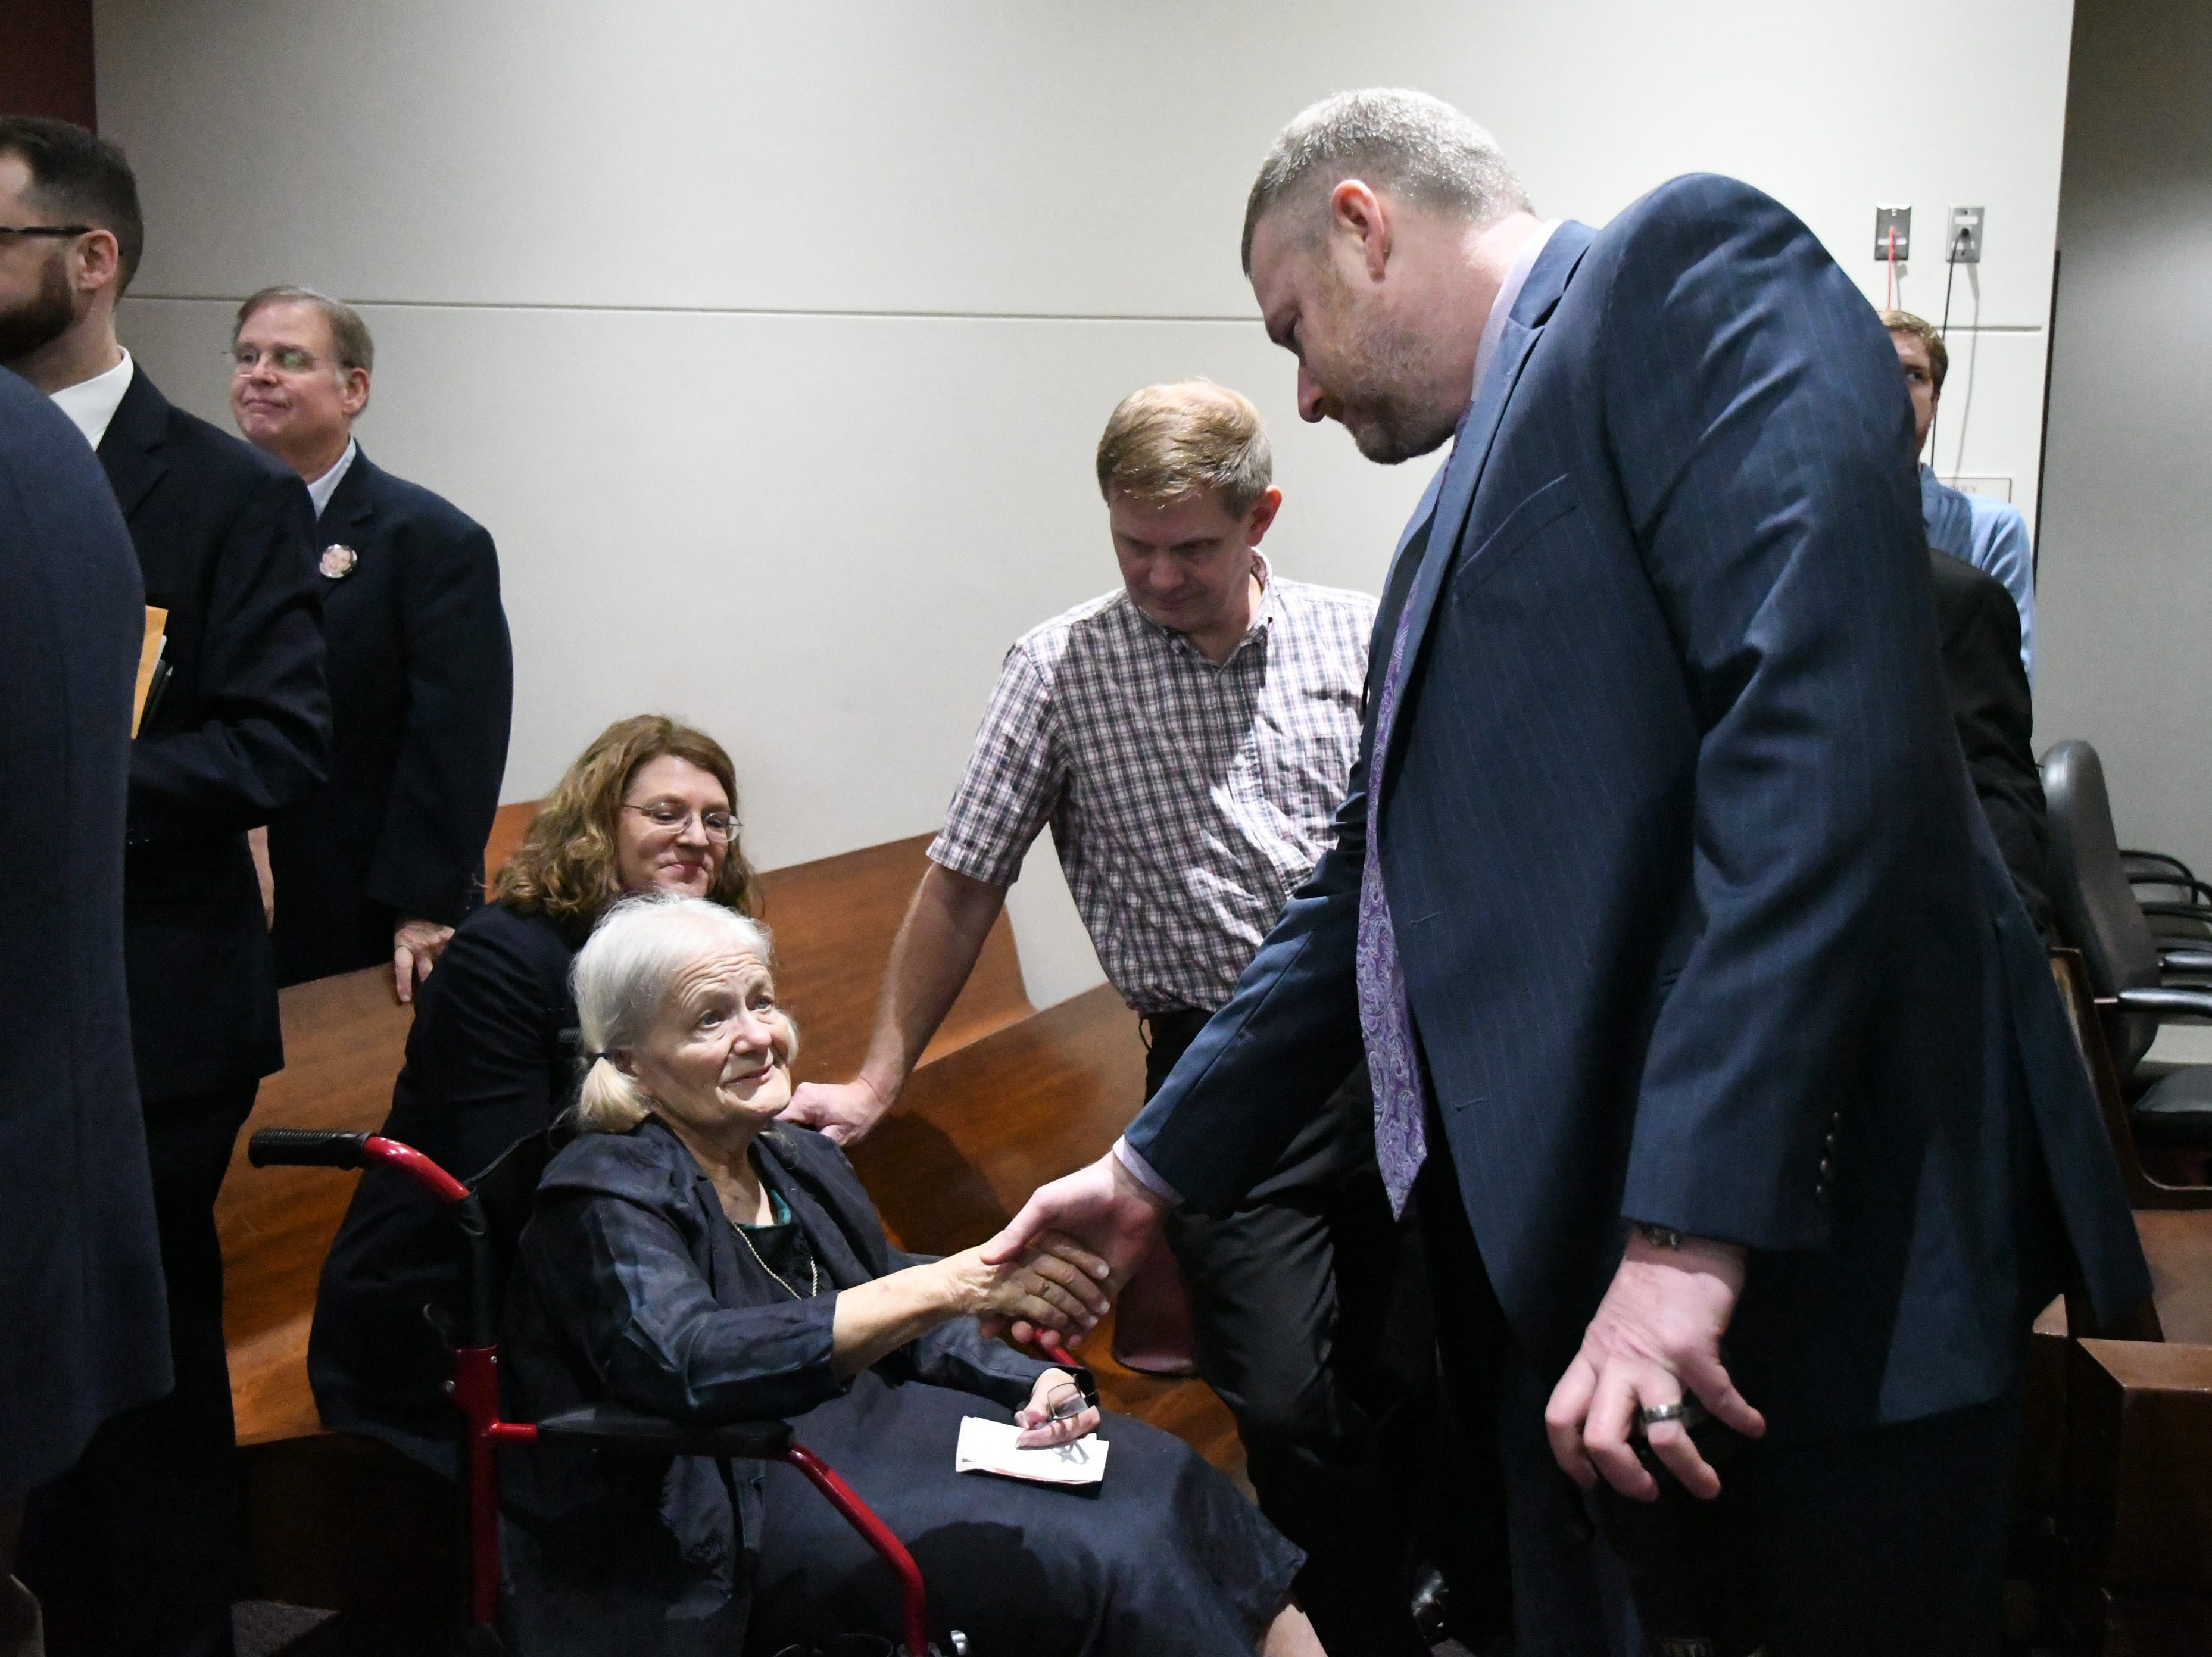 Cheryl Williams, mother of Mike Williams, the man who was murdered 18 years ago, shakes hands with assistant state attorney Jon Fuchs after listening to Denise Williams be sentenced to life in prison plus 30 years for murdering her husband Mike Williams, Wednesday Feb. 6, 2019.